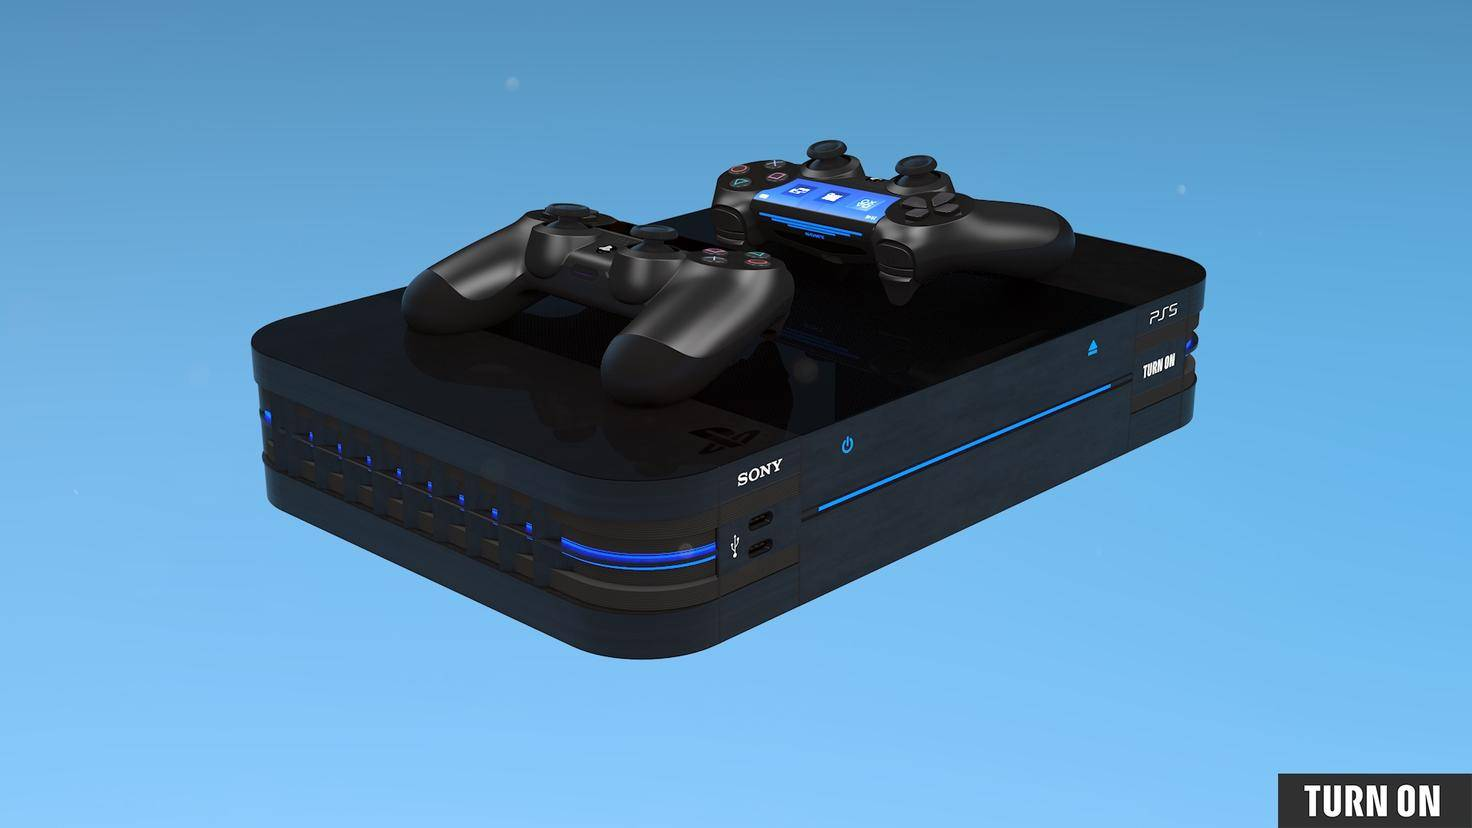 ps5-playstation-5-konzept-turn-on-konsole-wide